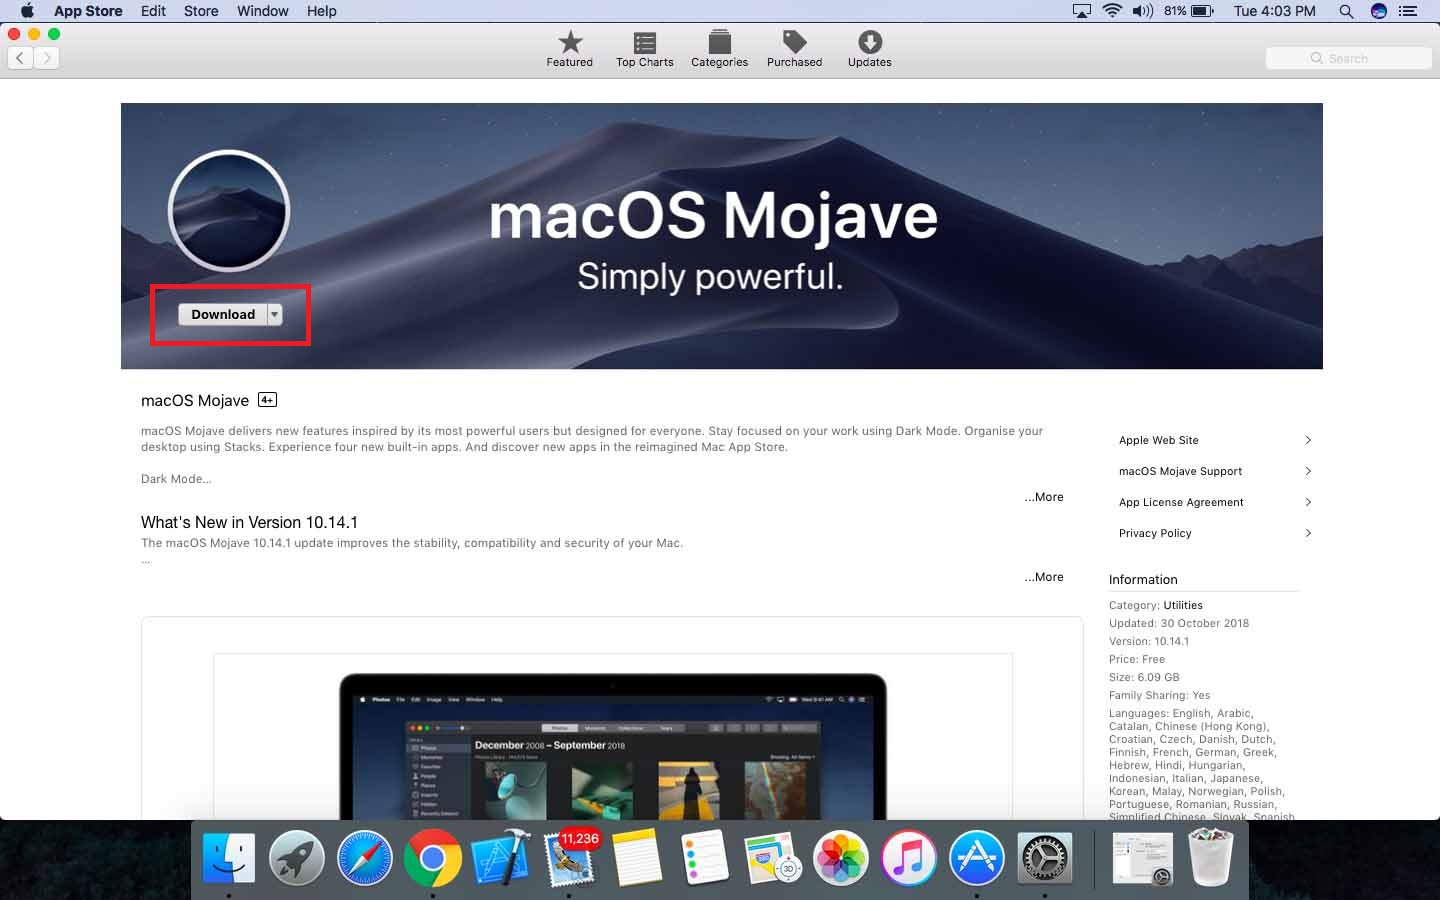 Solved] Macbook Updates not showing macOS Mojave - Setup guide